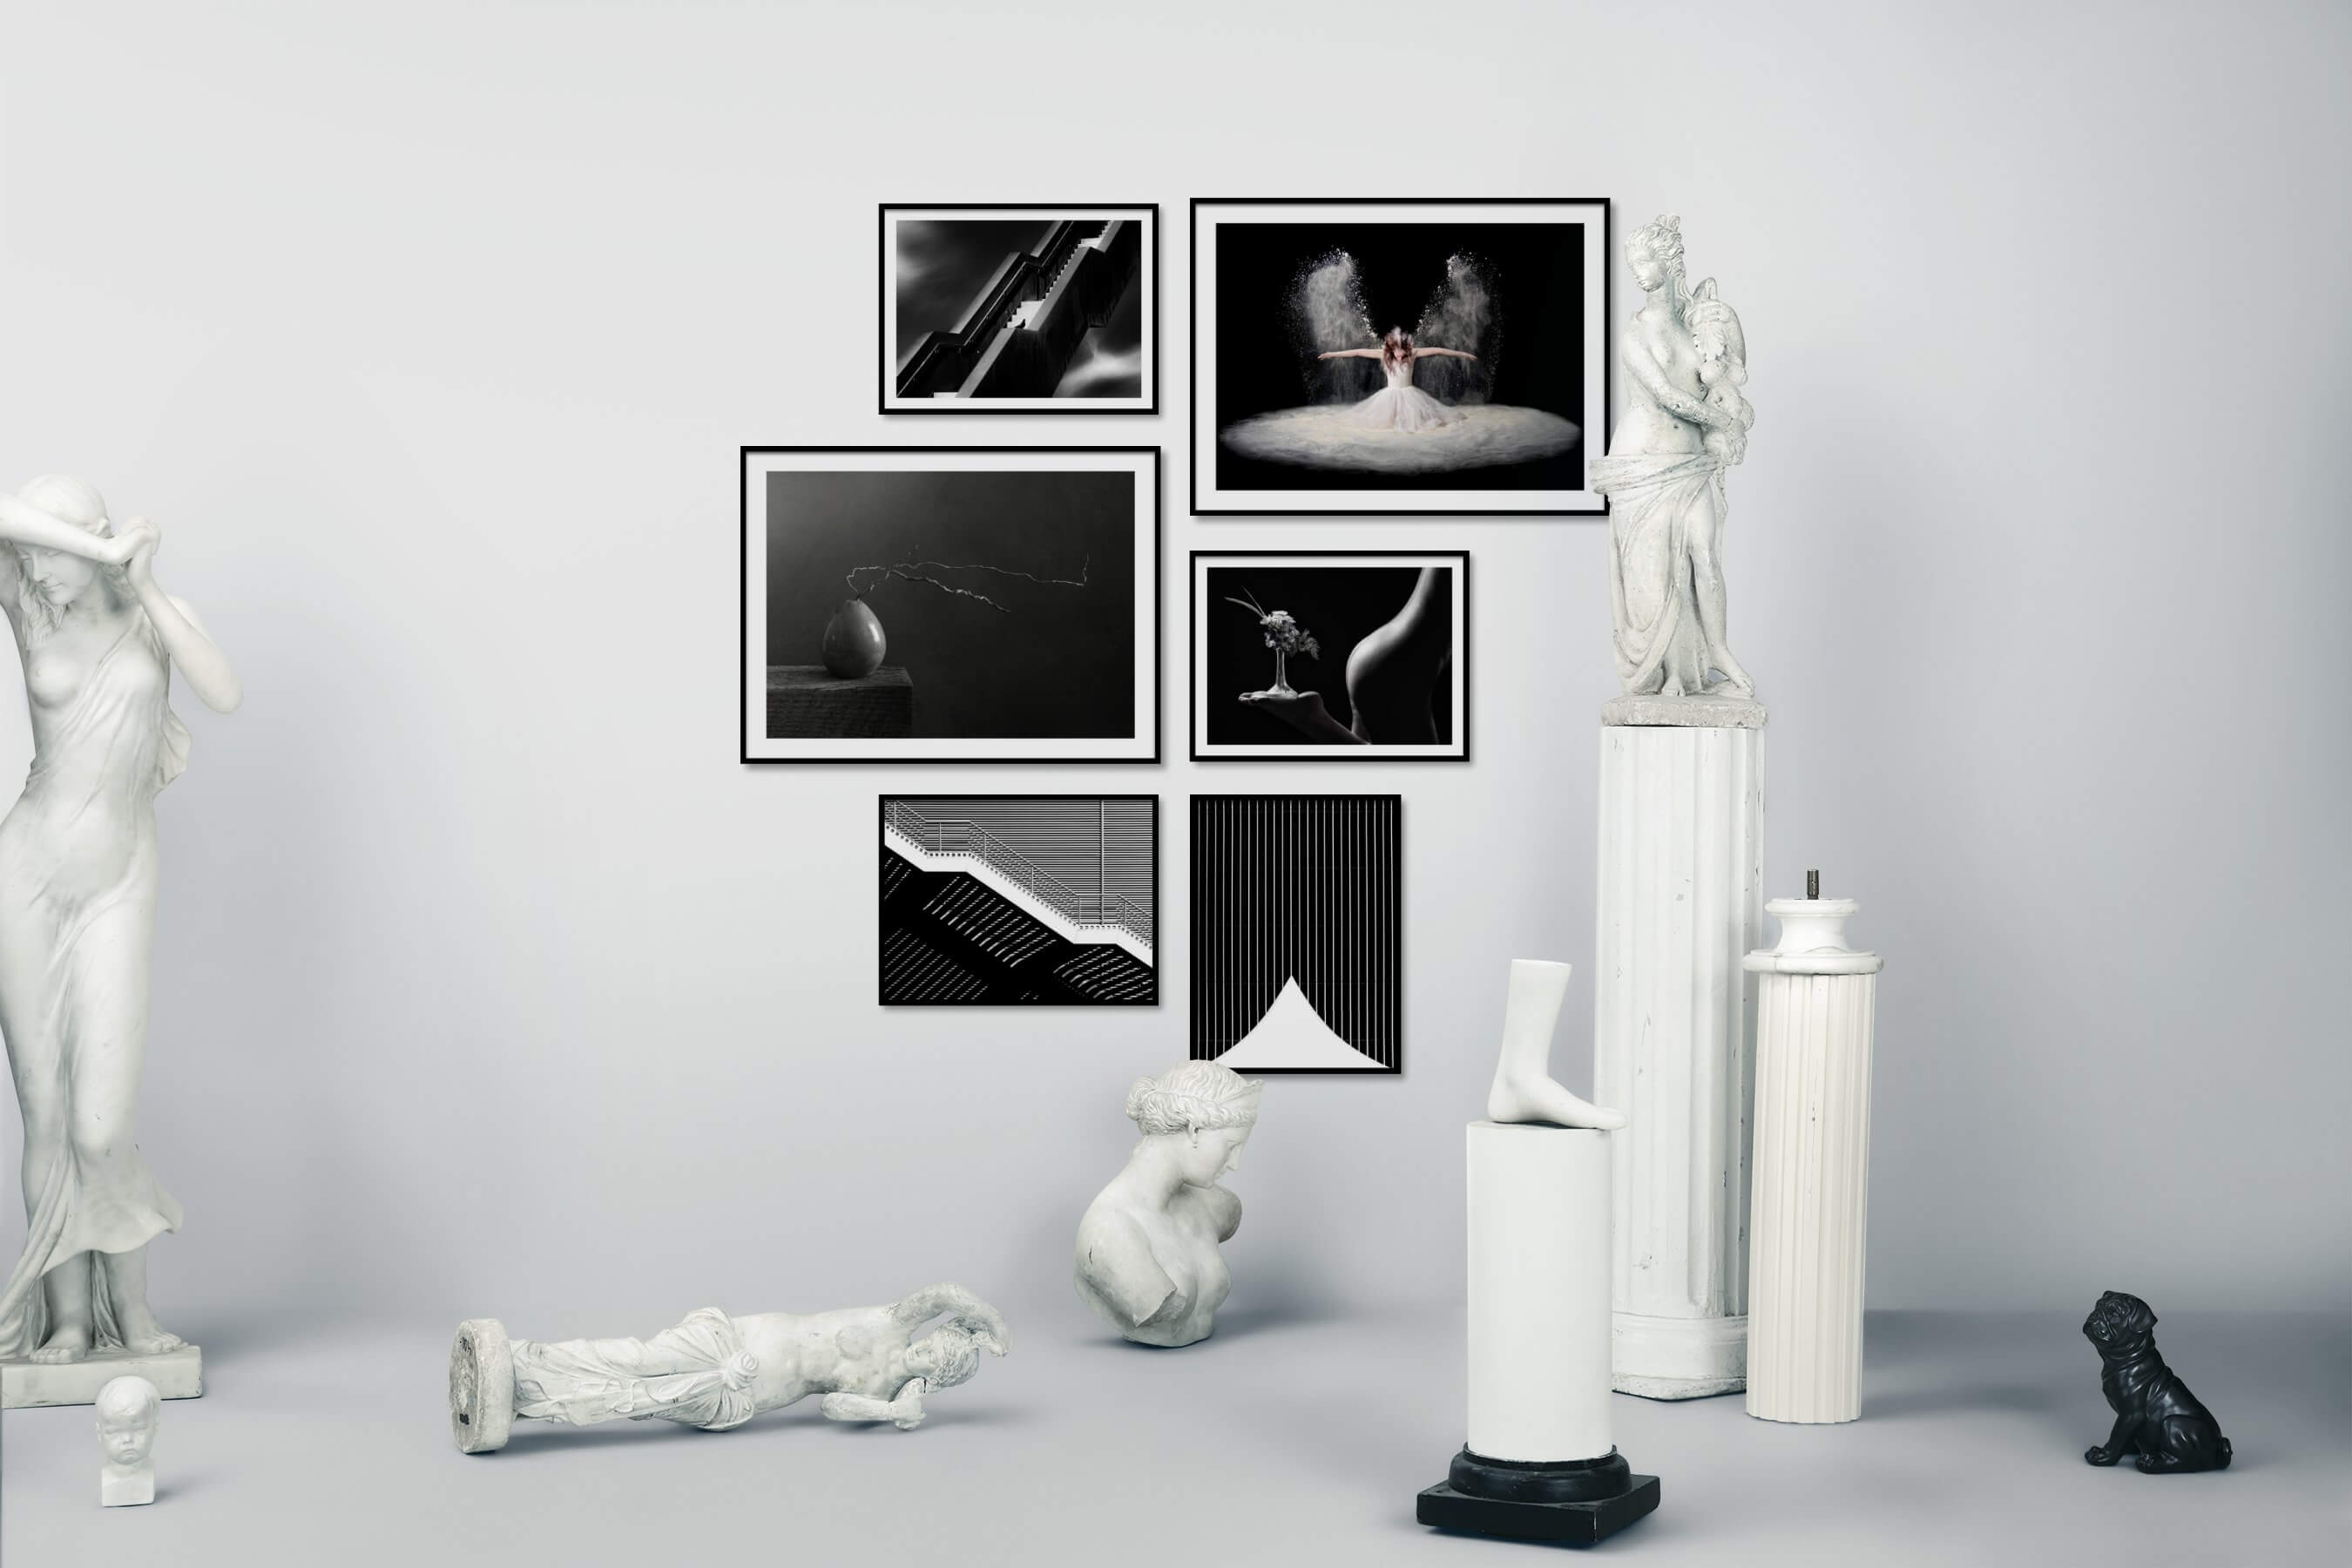 Gallery wall idea with six framed pictures arranged on a wall depicting Black & White, For the Moderate, Fashion & Beauty, For the Minimalist, and Flowers & Plants